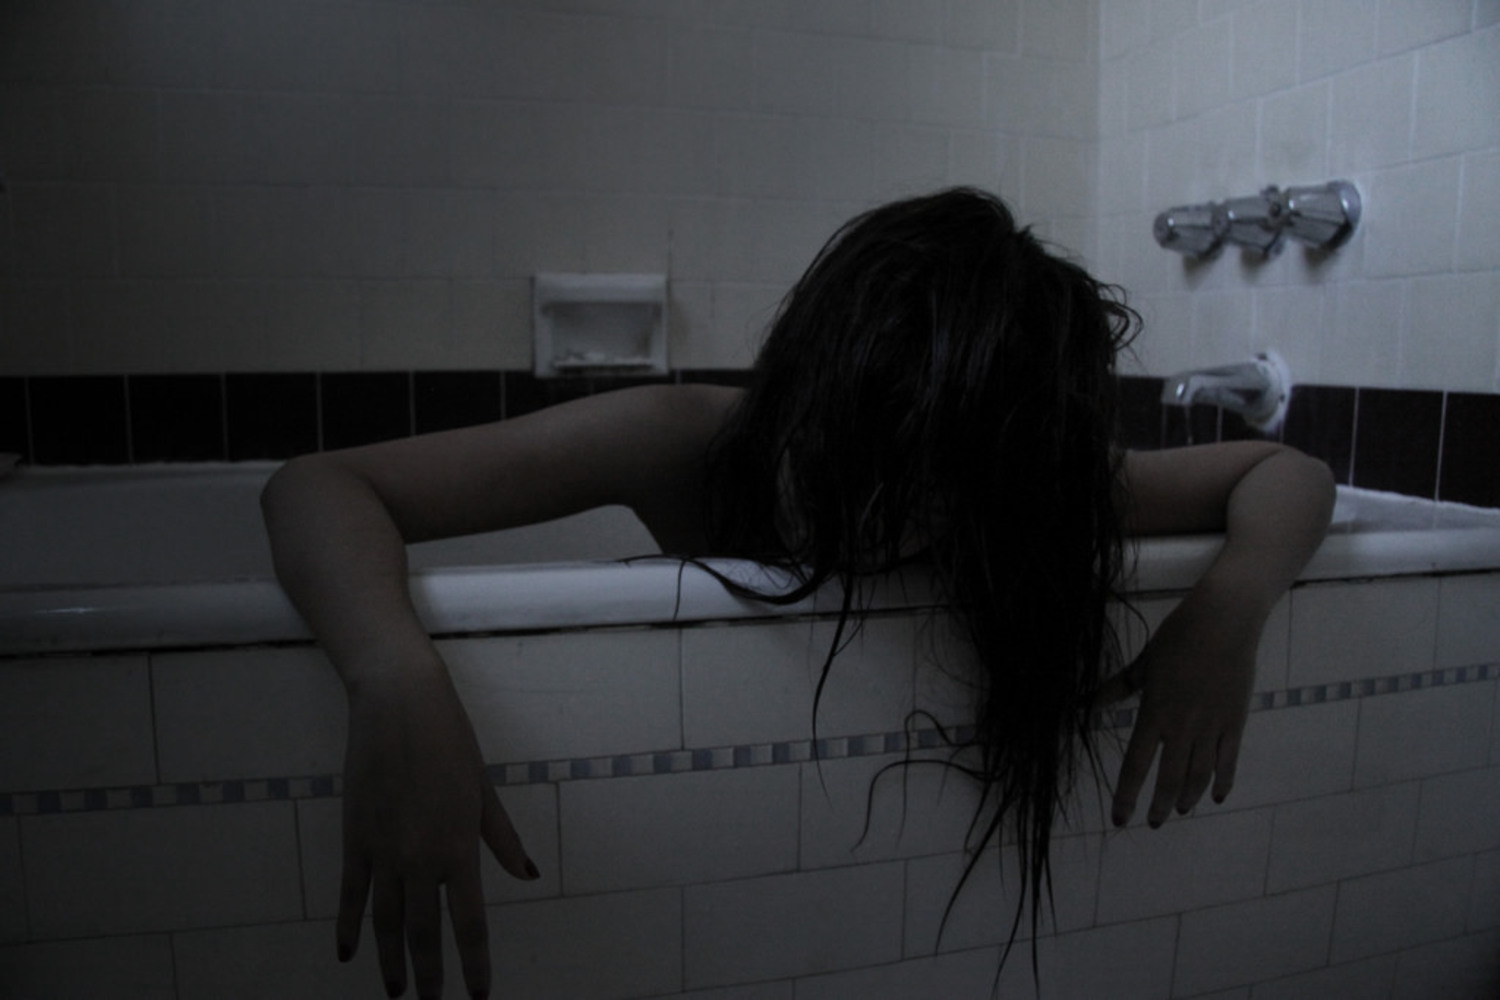 The ghost who wakes up from bathtub